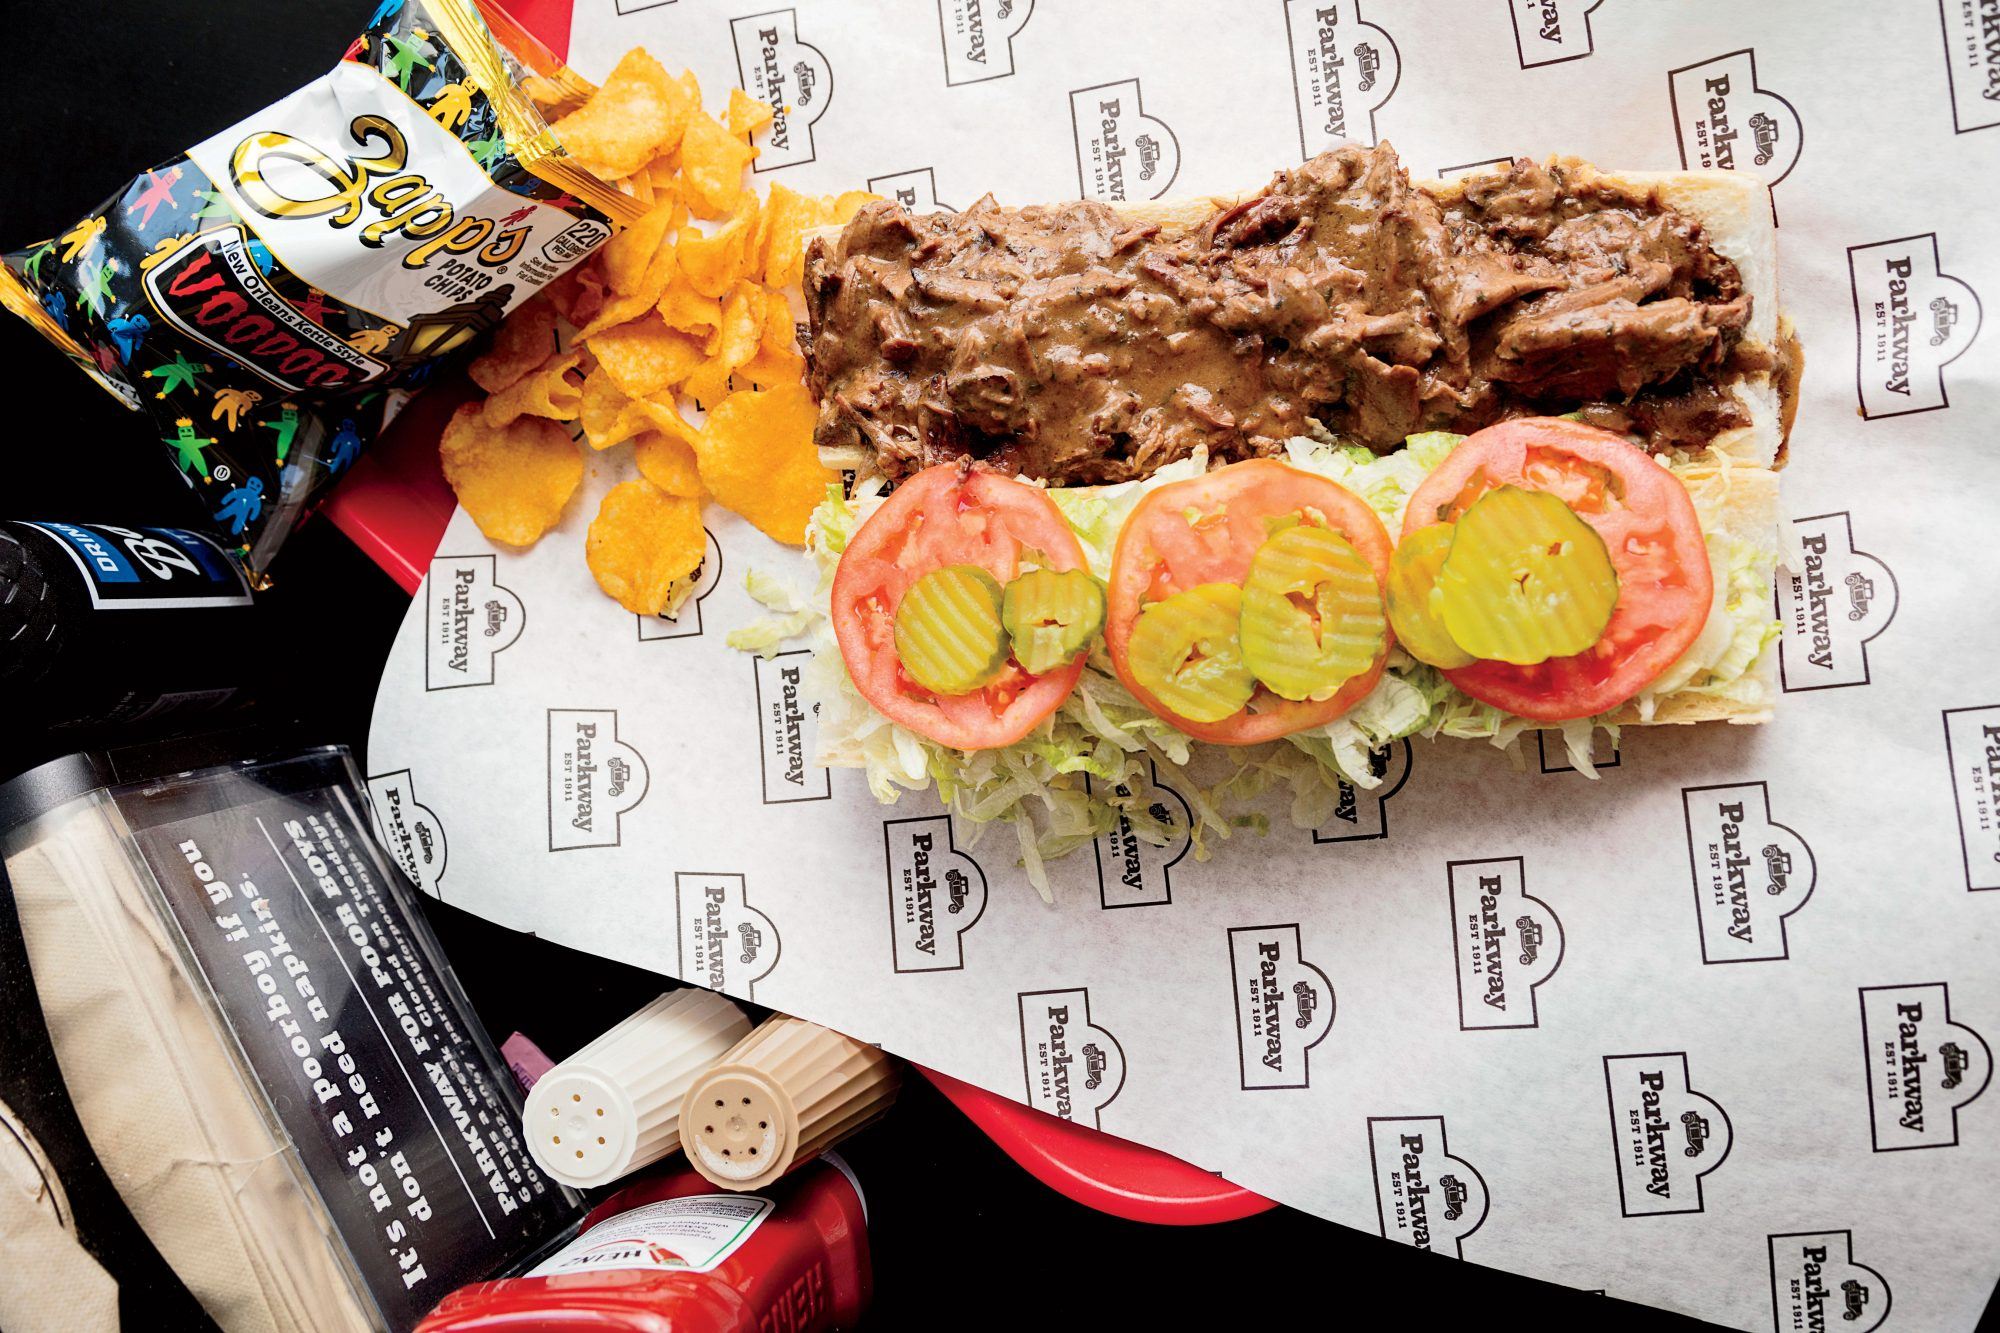 Parkway Bakery and Tavern Hot Roast Beef Poboy